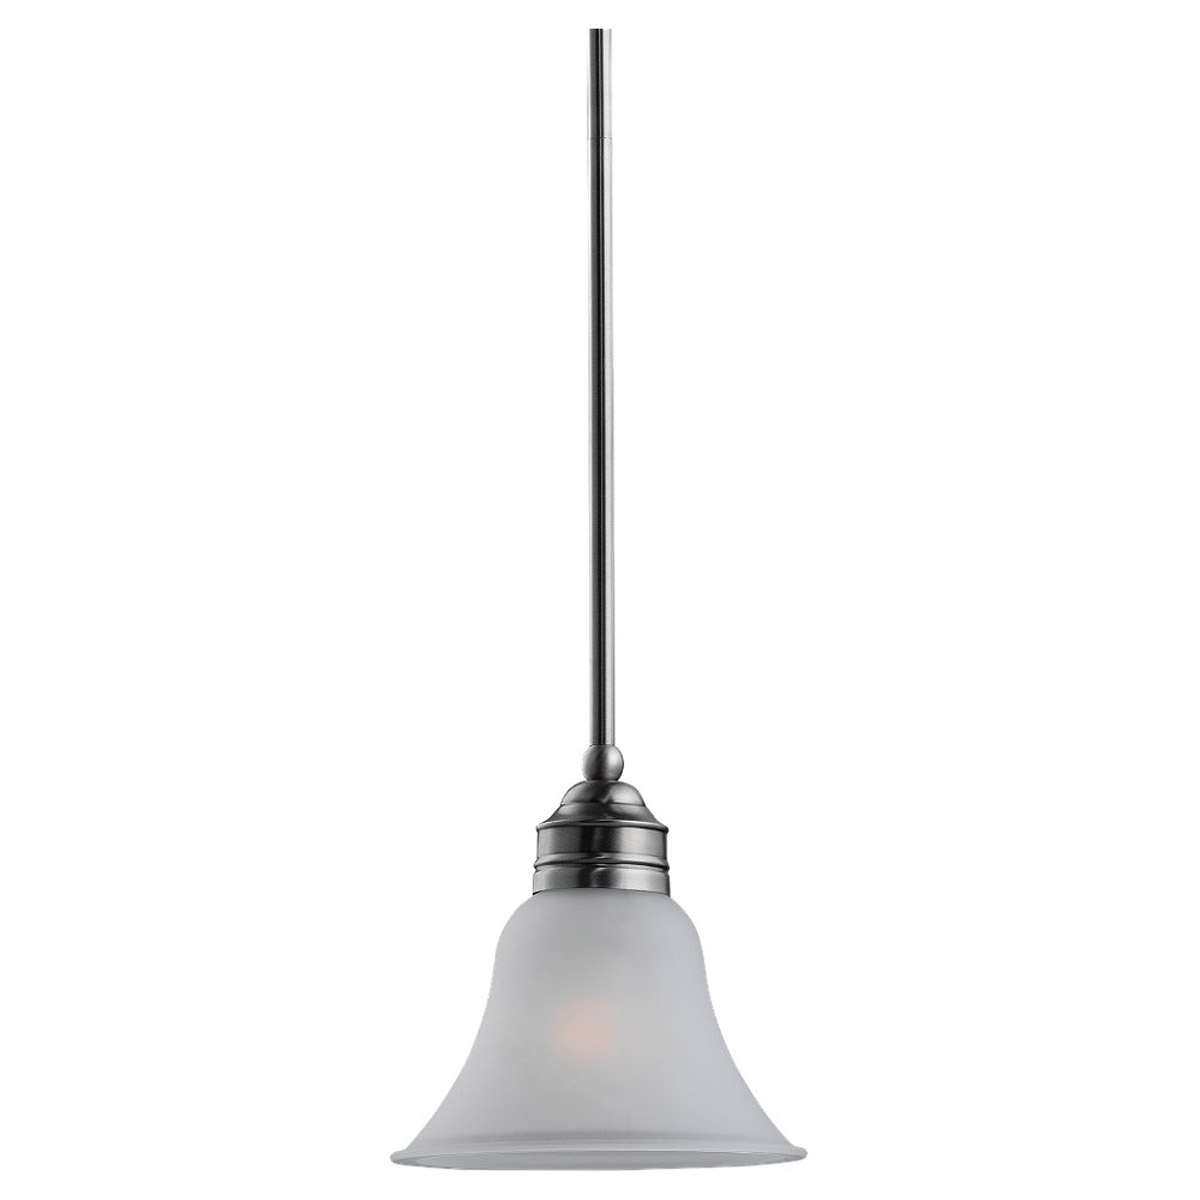 Sea Gull Lighting Gladstone 1 Light Mini Pendant in Antique Brushed Nickel 61850-965 photo